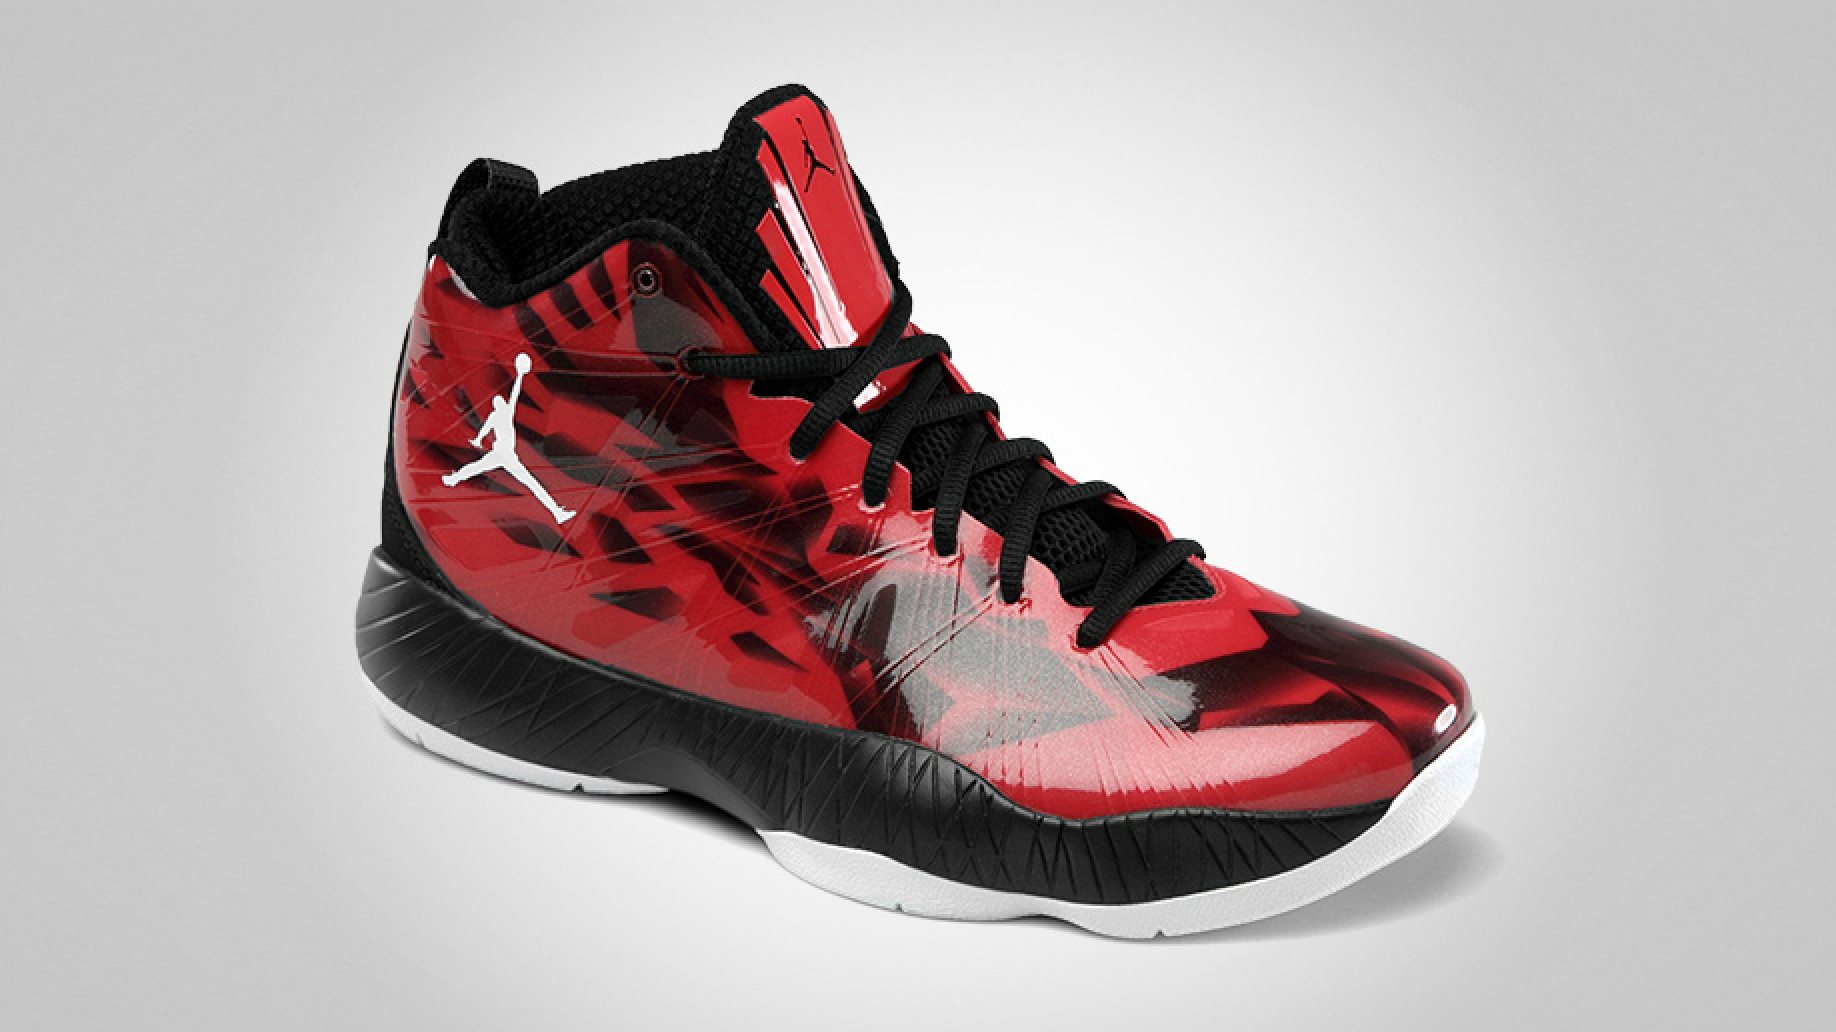 Air Jordan 2012 Lite 'Challenge Red/White-Black'